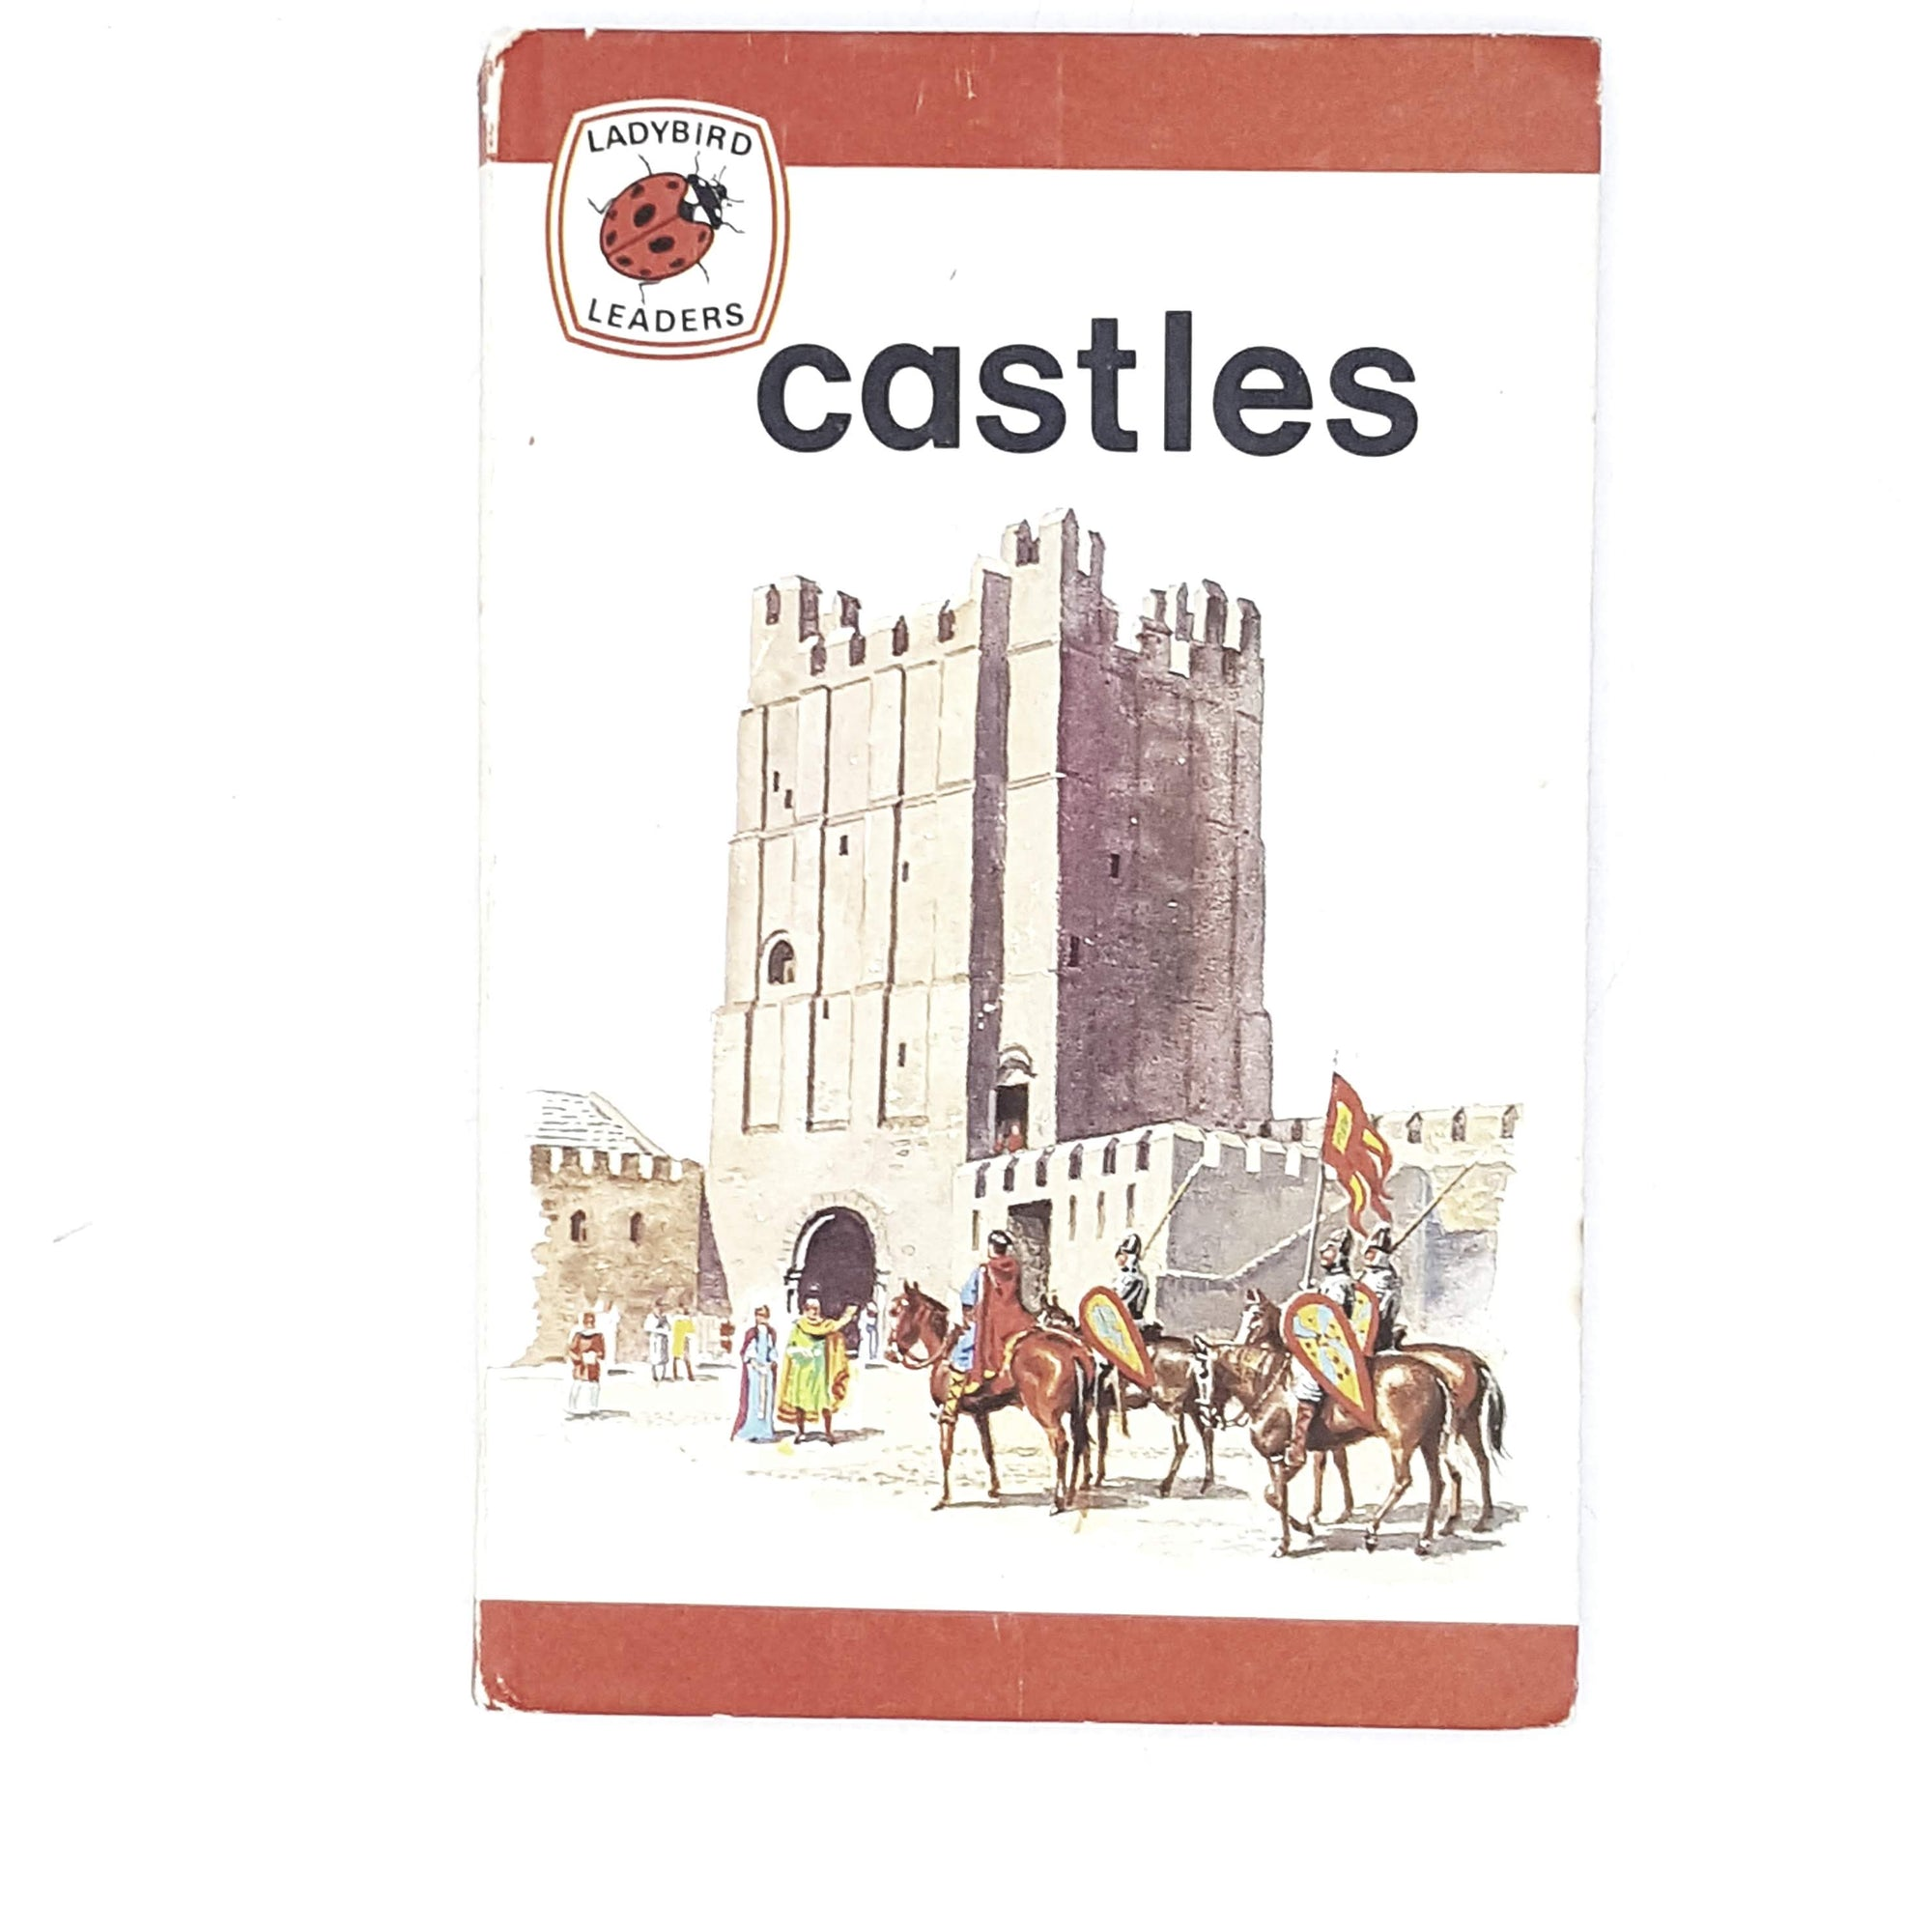 ladybird-leaders-castles-1974-country-house-library